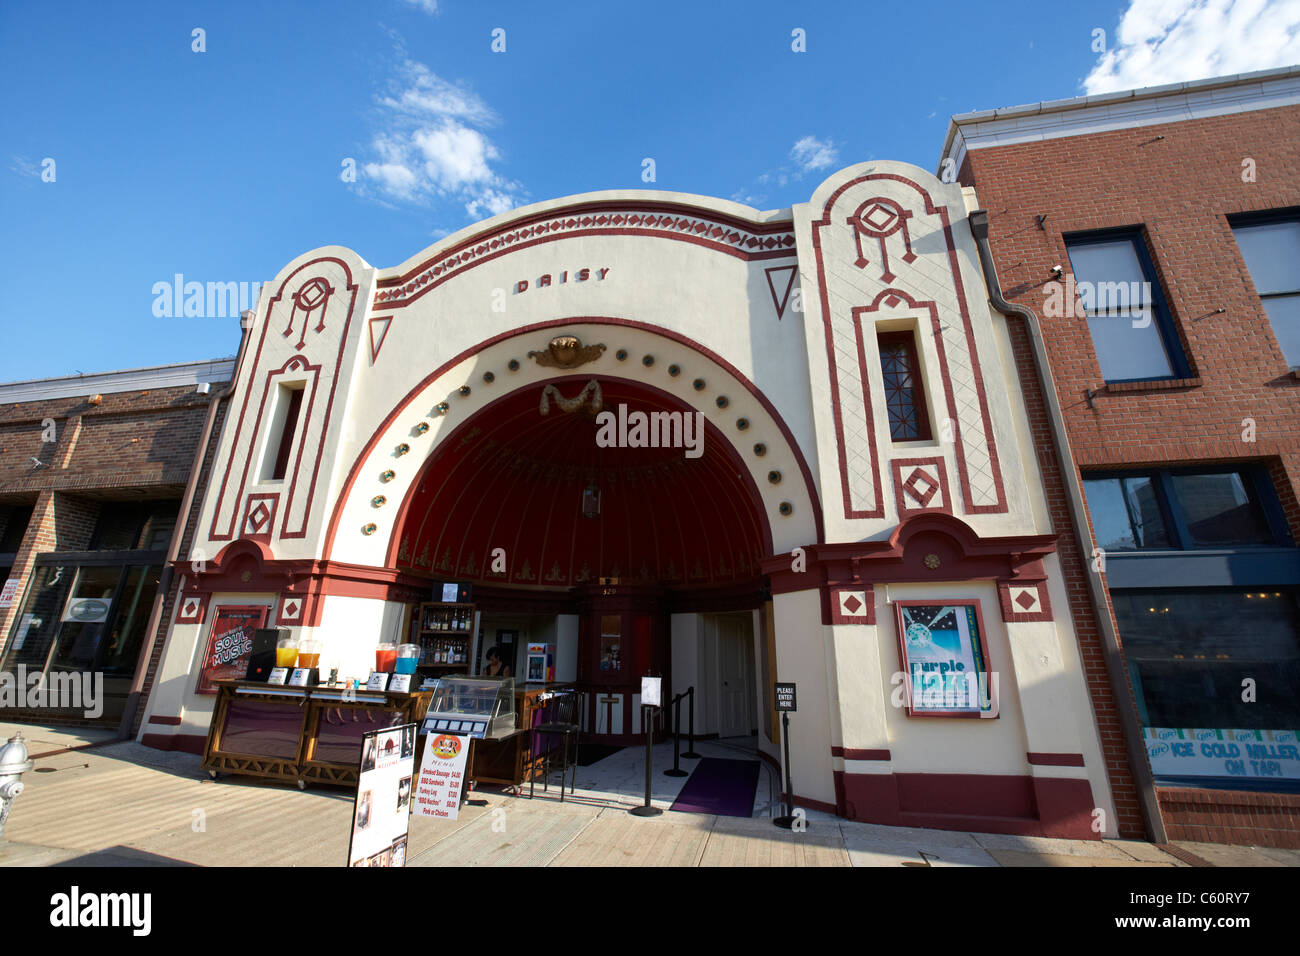 the historical old daisy theater on beale street memphis tennessee united states america usa - Stock Image